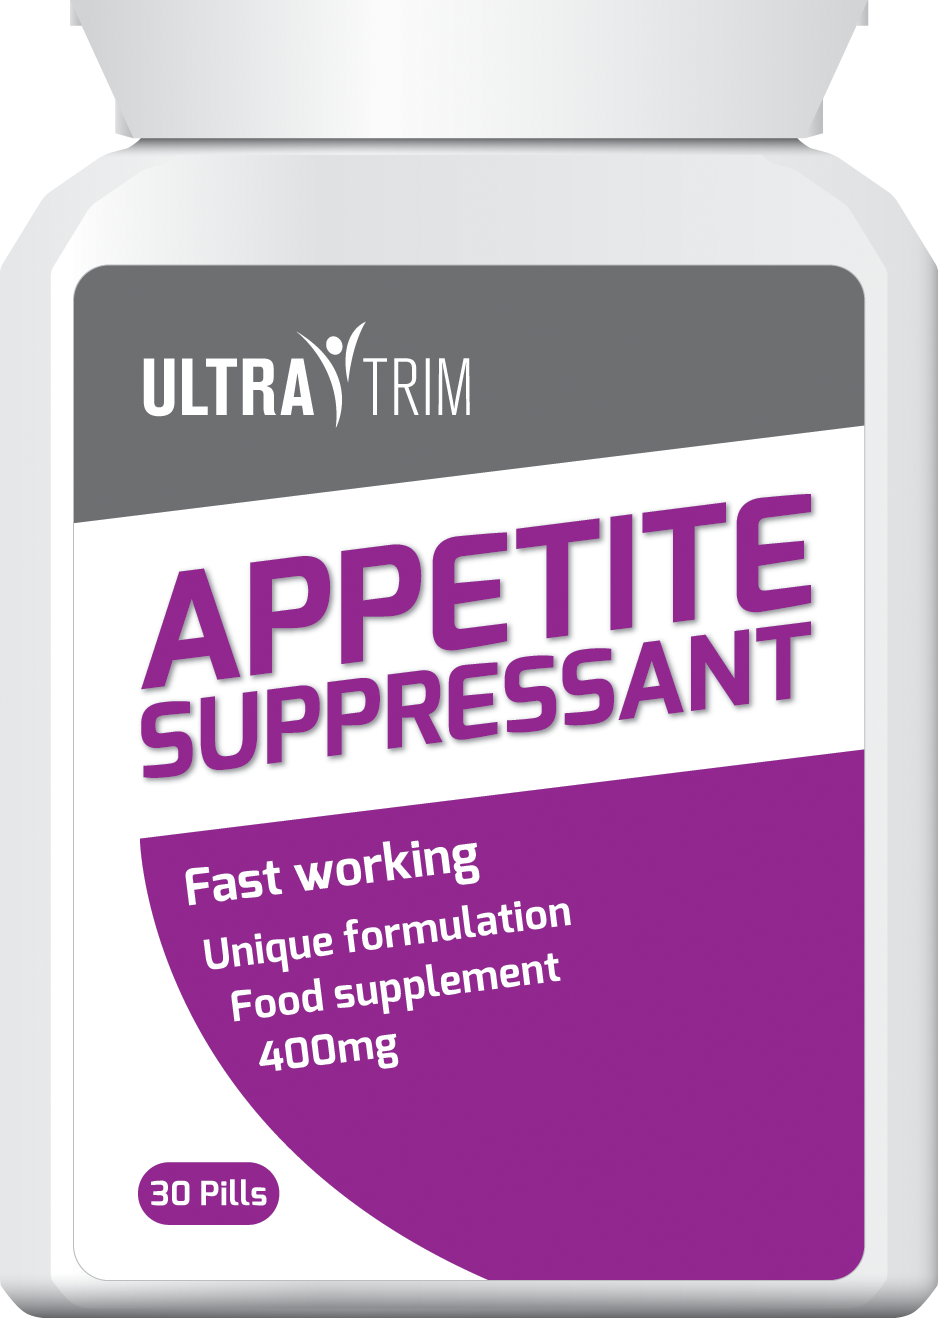 Details About Ultra Trim Appetite Suppressant Pills Stop Hunger Cravings Lose Weight Fast